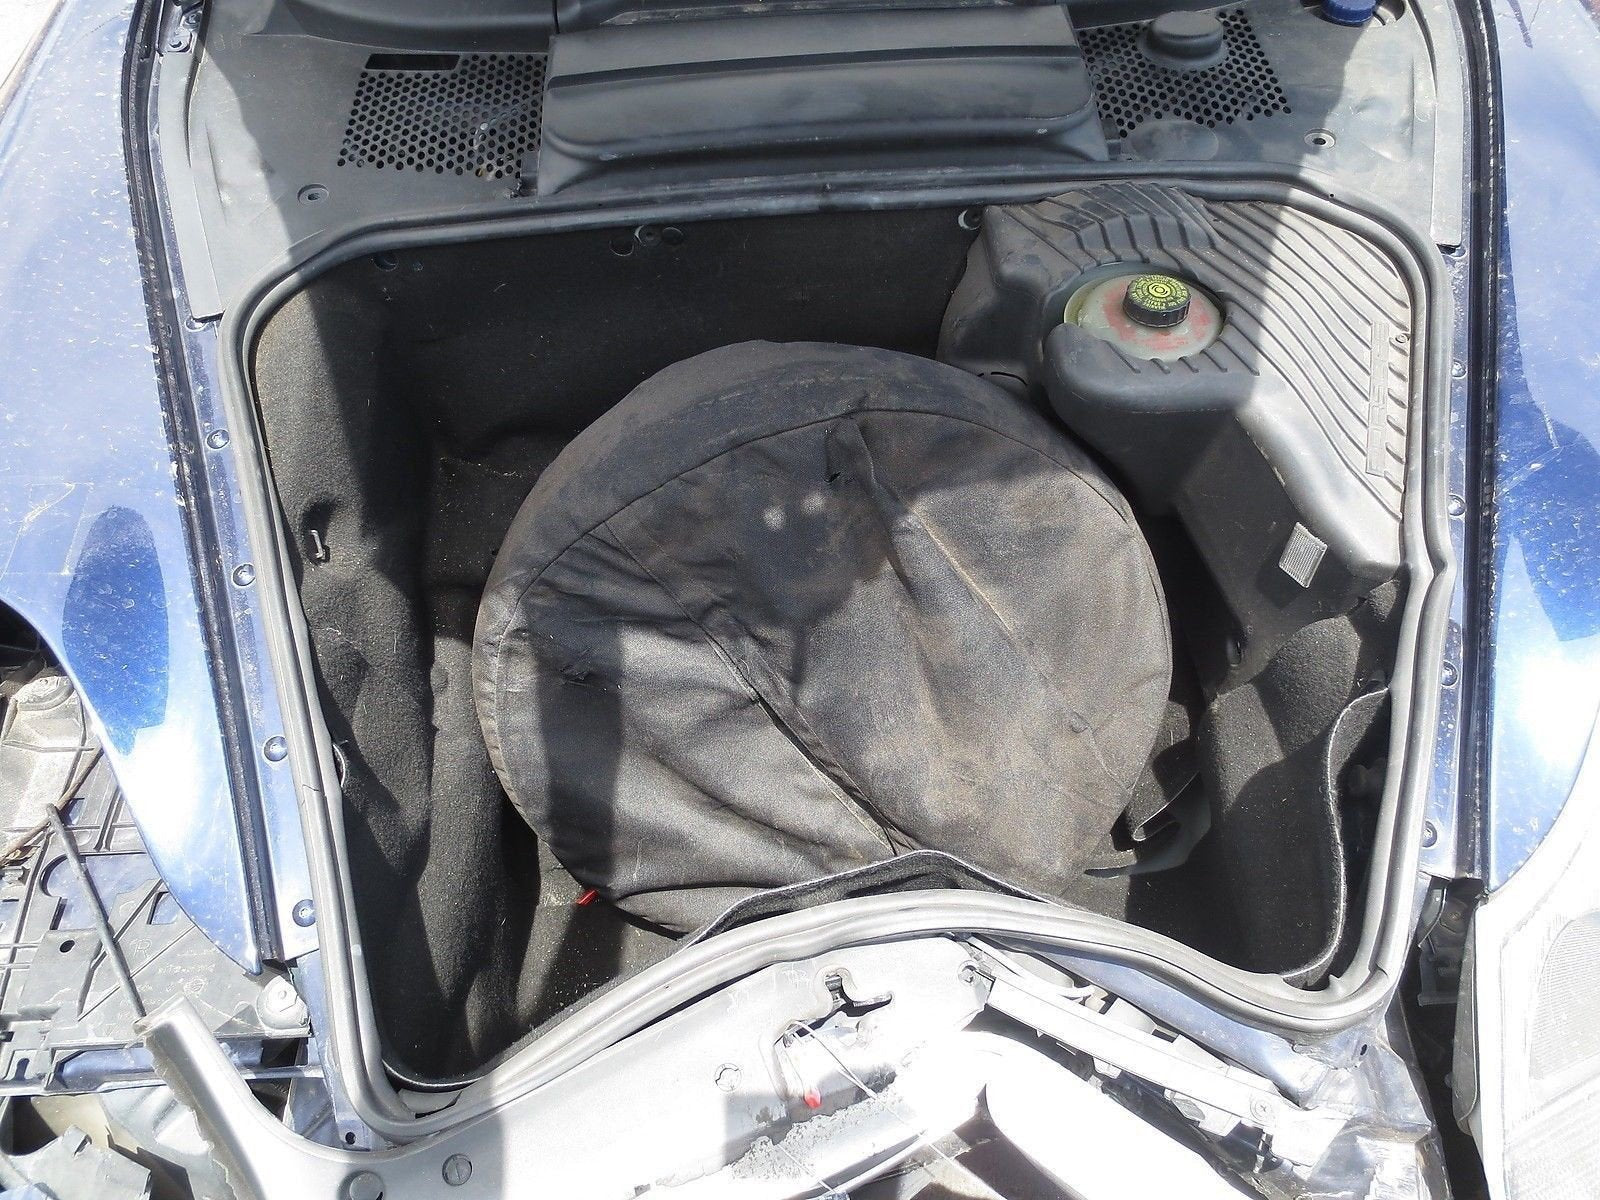 02 Porsche 911 BOXSTER S 986 Parting Out car parts 101k